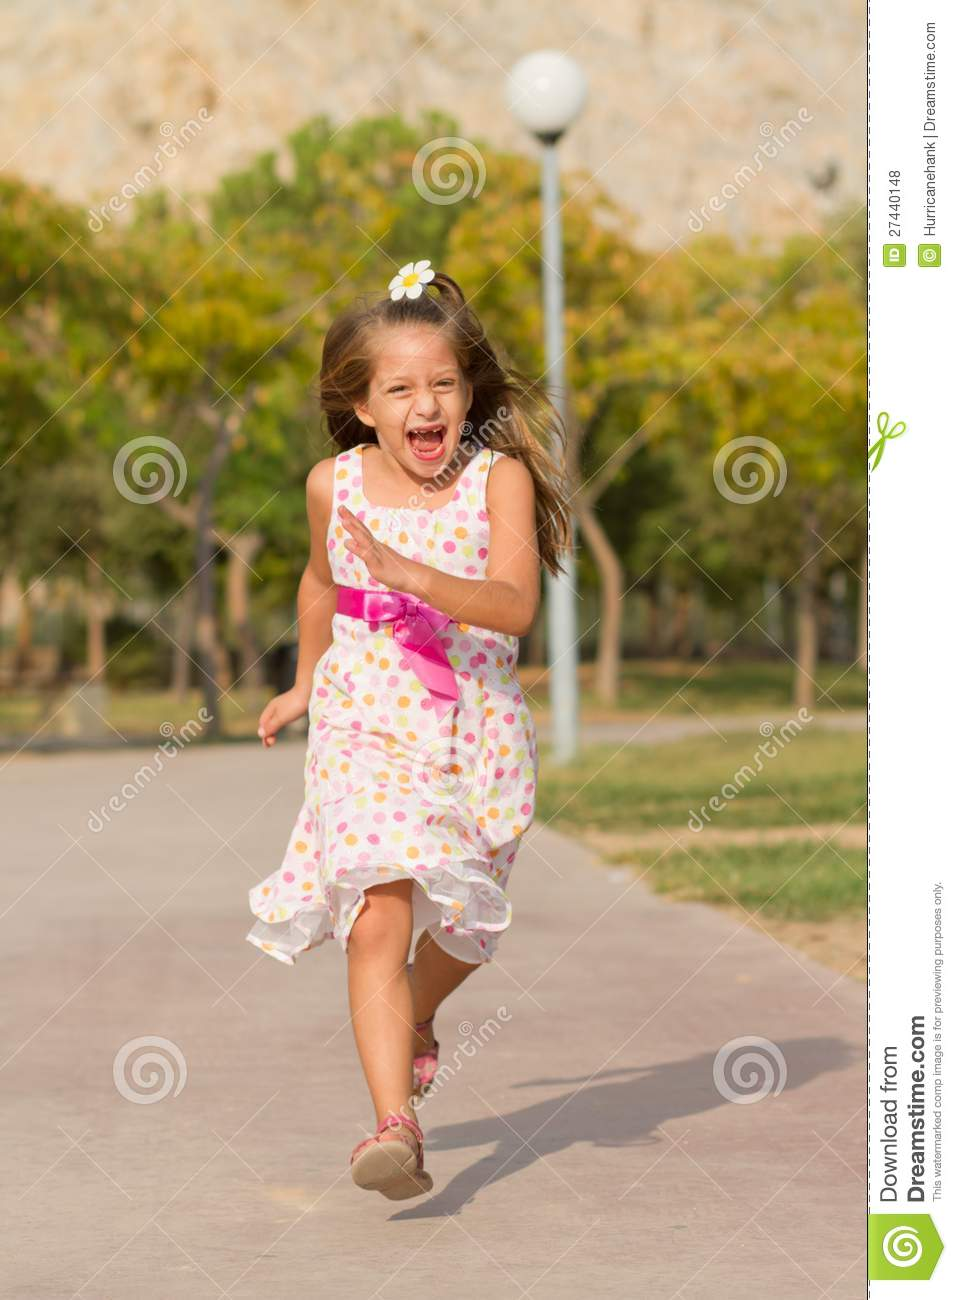 Funny Running Pictures Little Girl girls,ru,nn images - u...